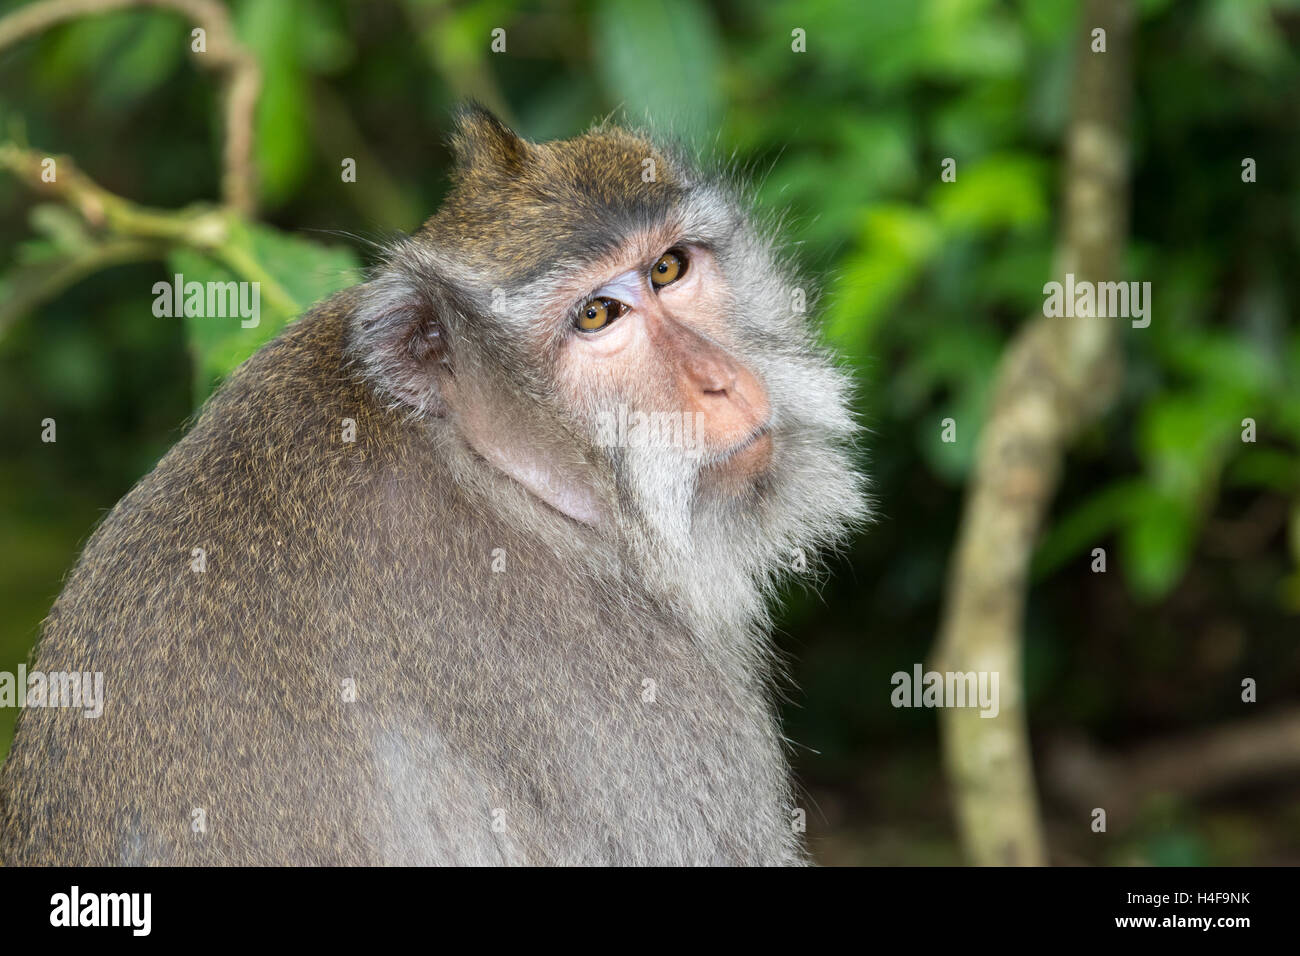 Portrait of a Balinese Long-Tailed Monkey in the Ubud Monkey forest in Bali, Indonesia. - Stock Image